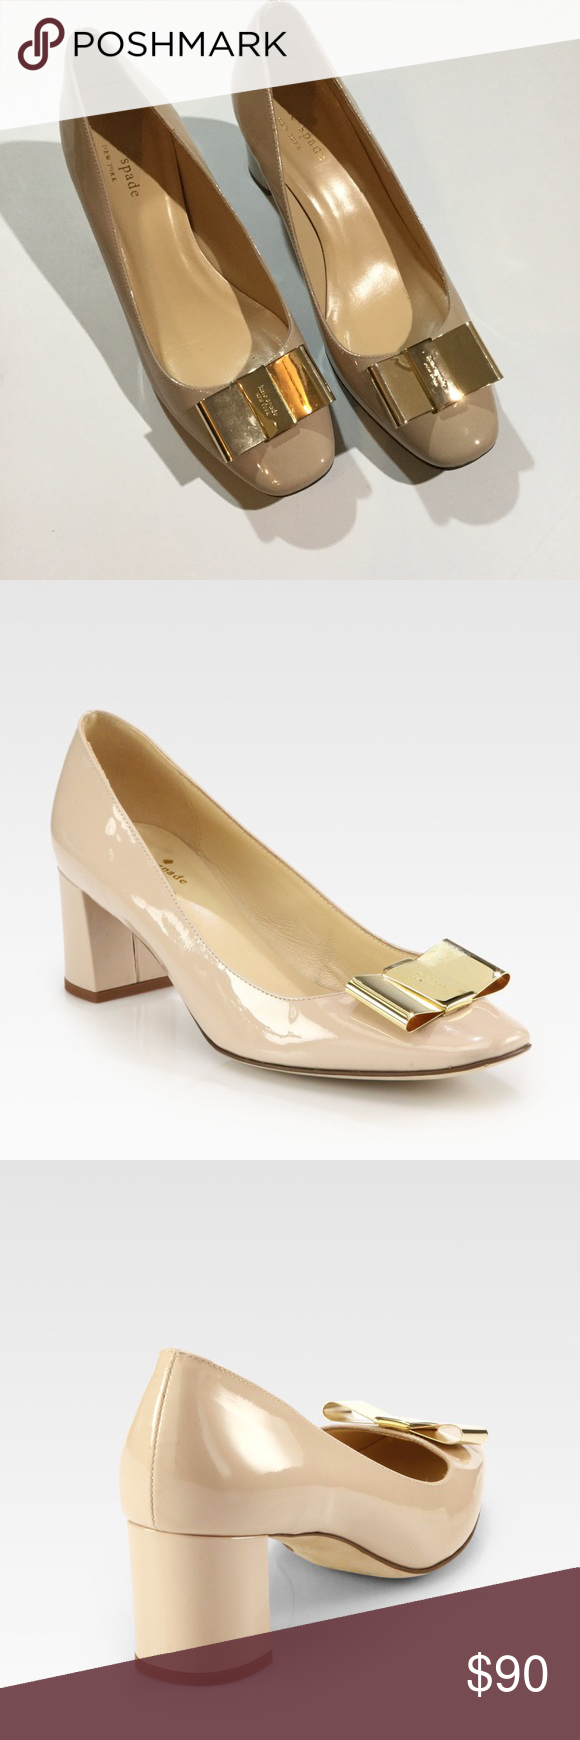 e37d3256d04 Kate Spade Sz 7 Pink Dijon Patent Leather Gold Bow Kate Spade Womens Sz 7  Pink Dijon Patent Leather Gold Bow Block Heels Pumps Nude Condition  Pre  owned ...